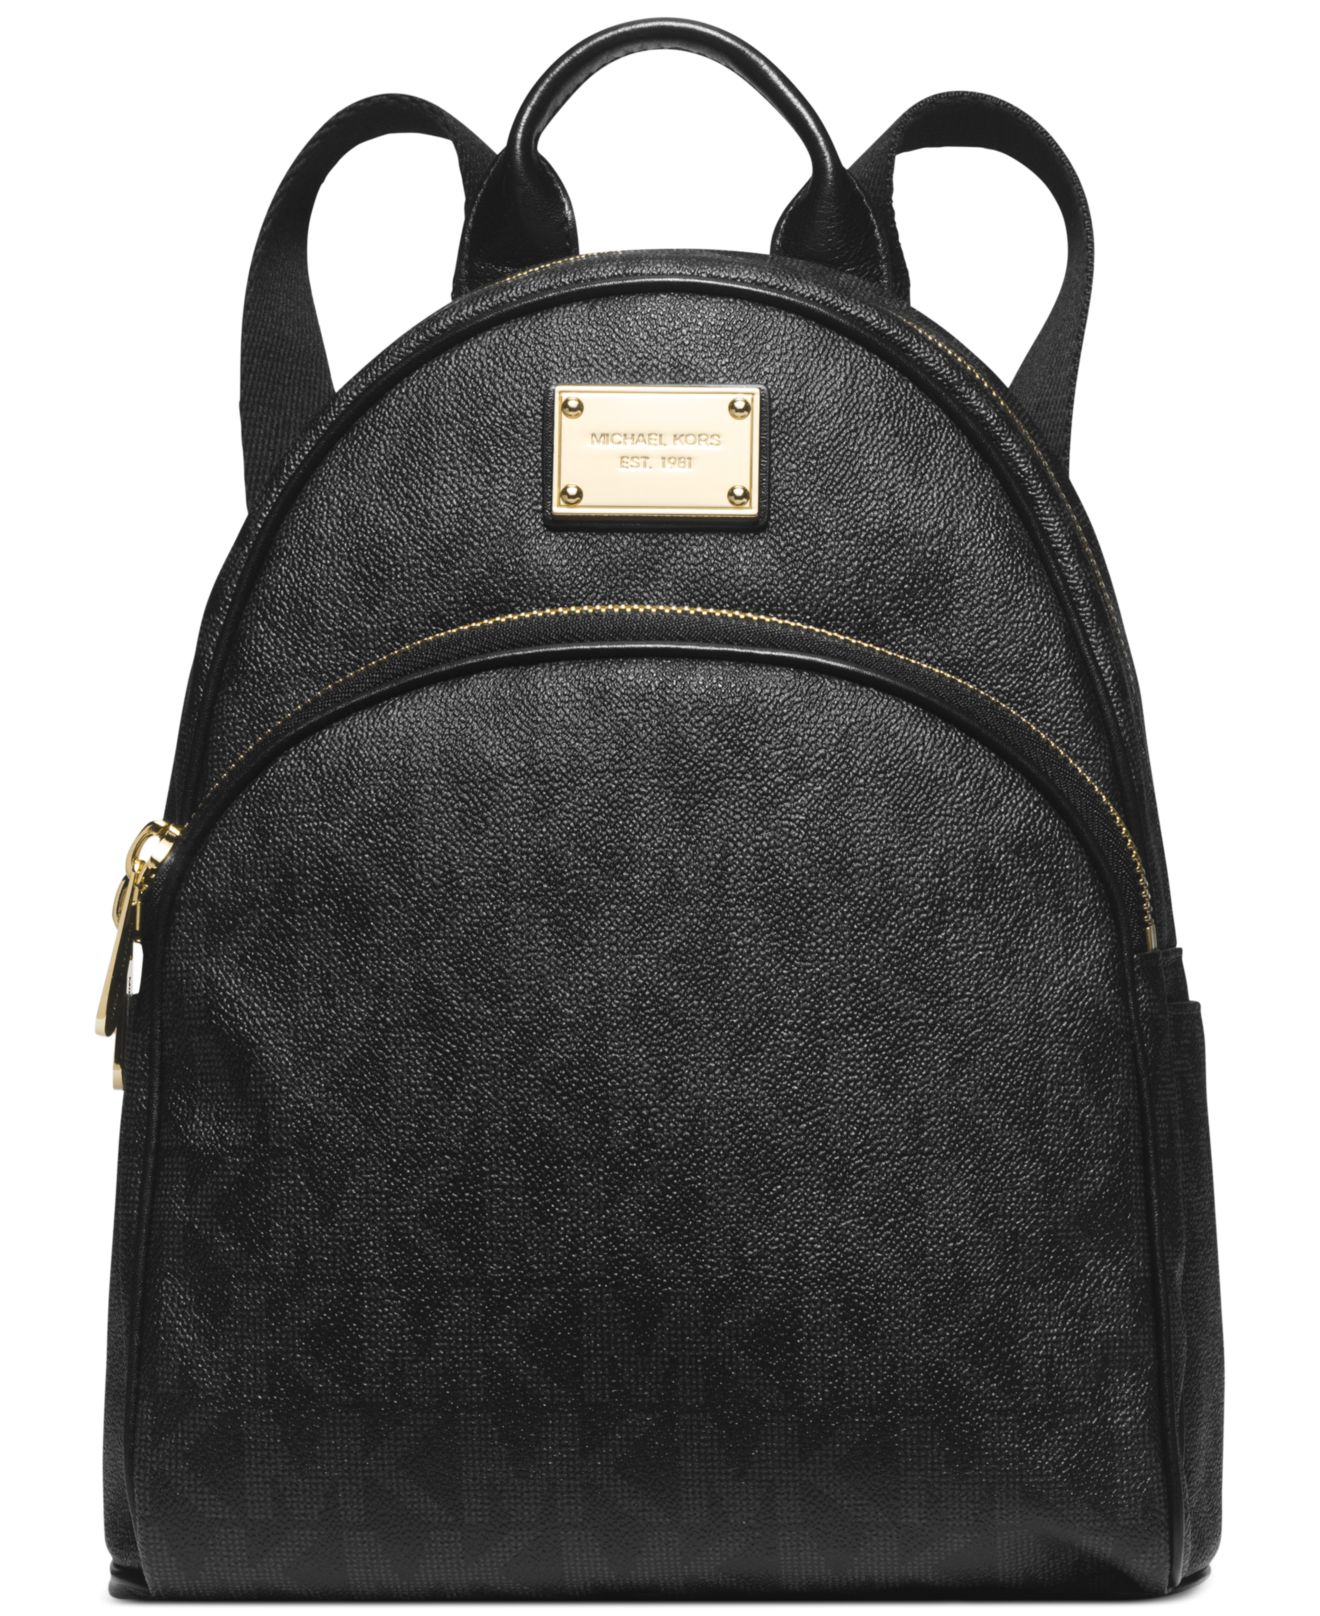 444290148e30 promo code michael kors abbey mini backpack d2554 51af5; netherlands lyst michael  kors michael signature small backpack in black efcdb 01c0e